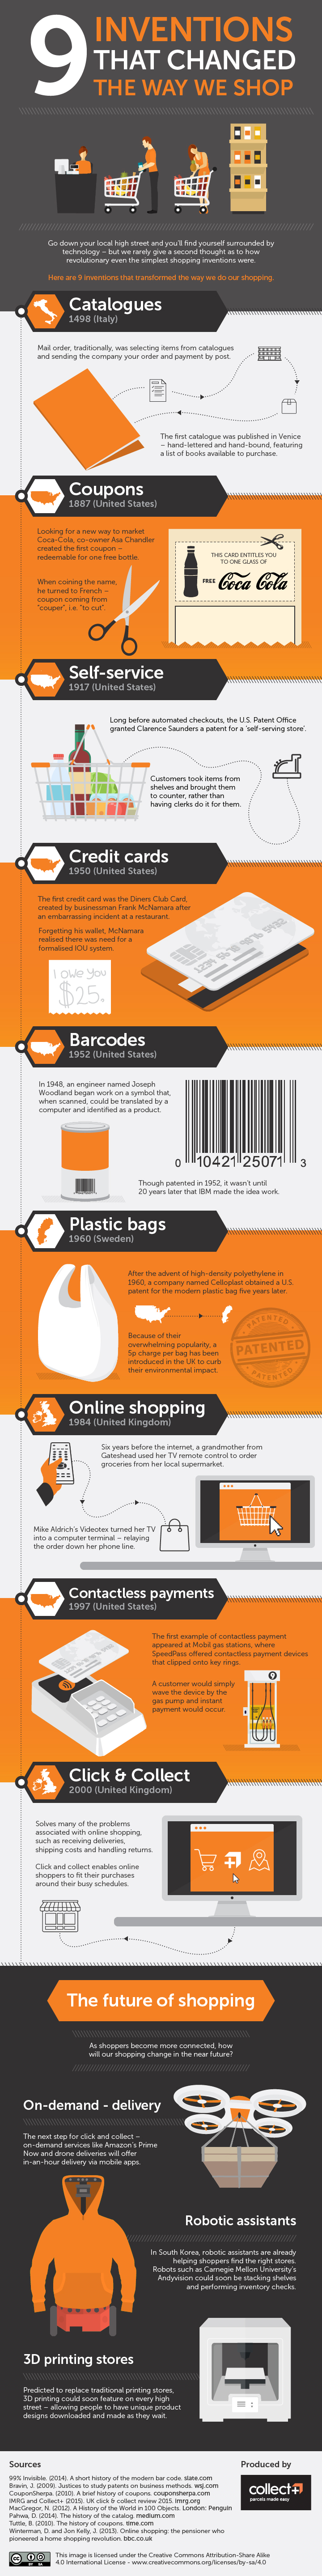 9 Inventions That Changed the Way We Shop